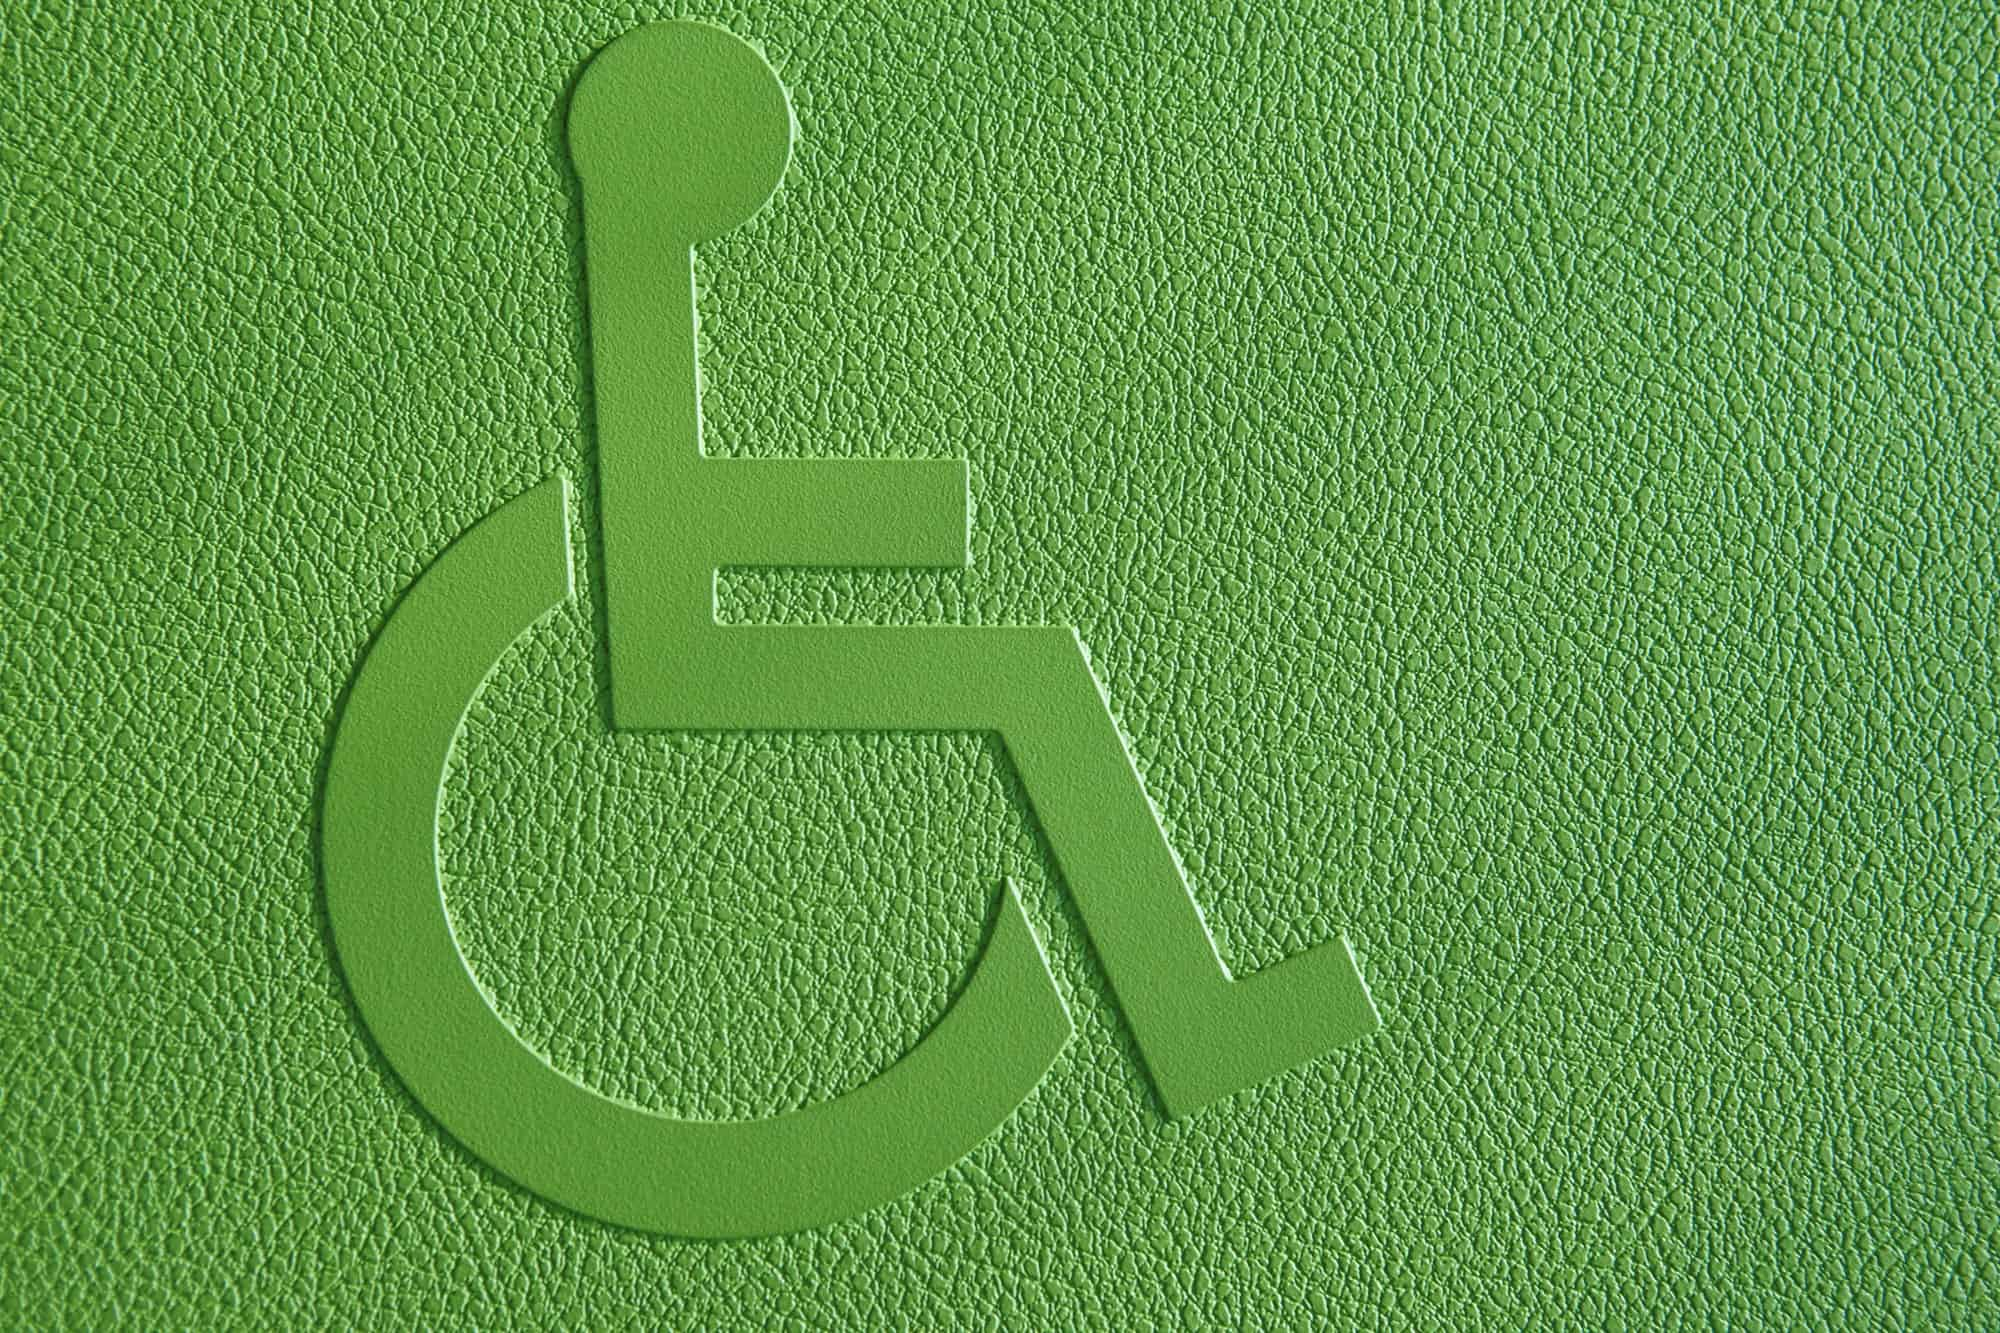 Disabled symbol on a green textured background. Horizontal